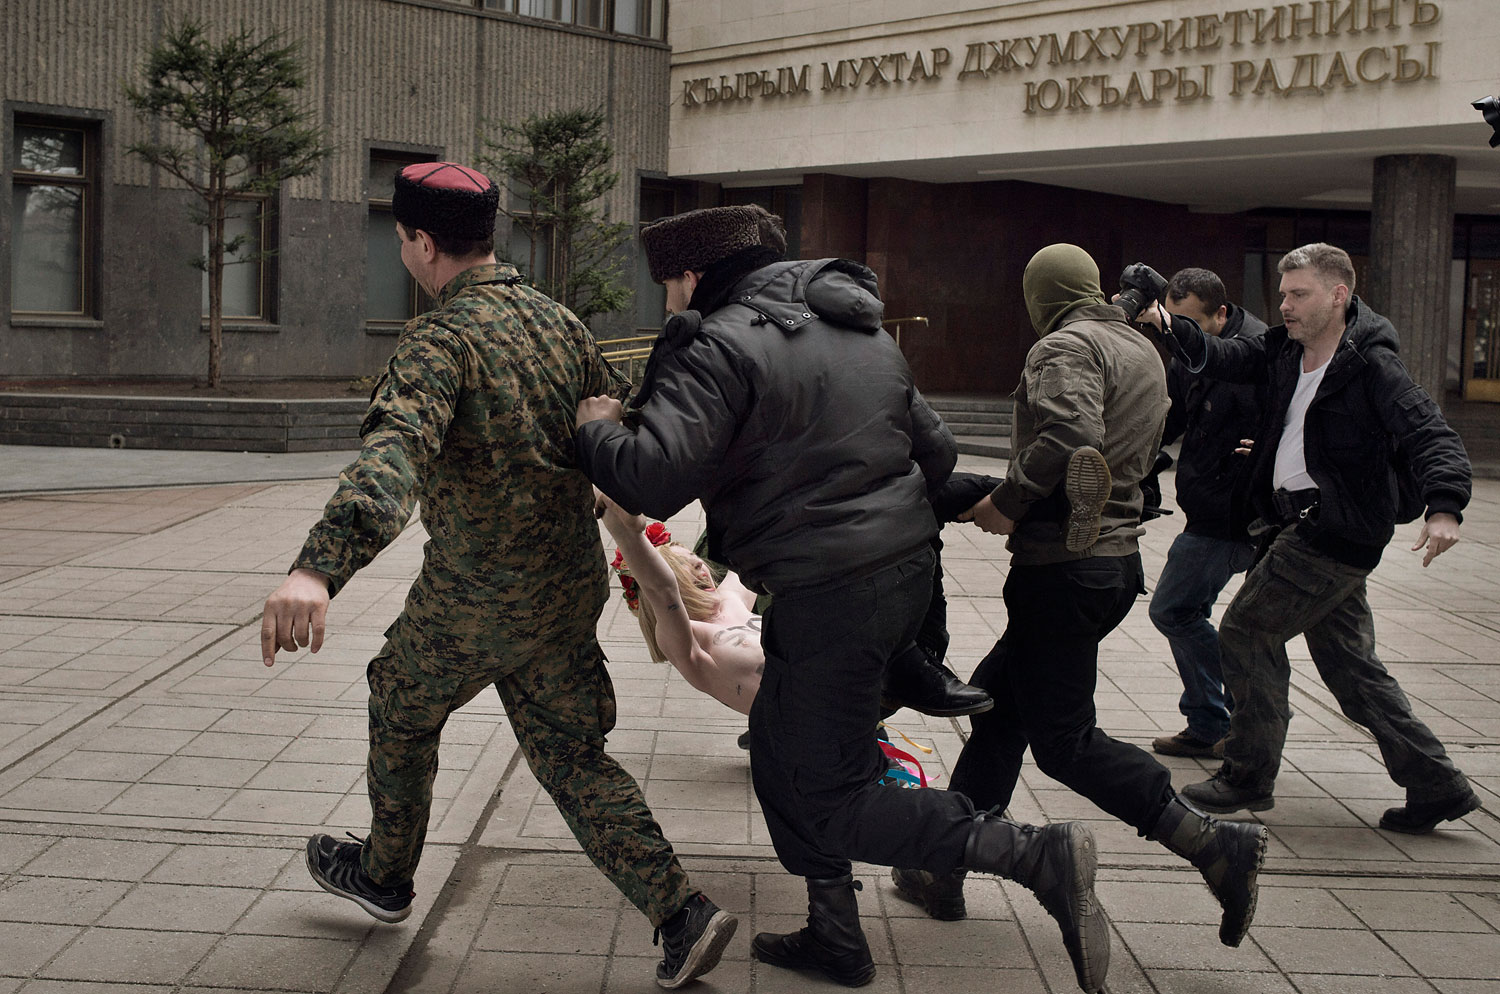 """Cossacks and Ukrainian police detain feminist protesters who interrupted a pro-Russian rally with shouts of """"Stop Putin's war"""" in Simferopol, Crimea, March 6, 2014."""